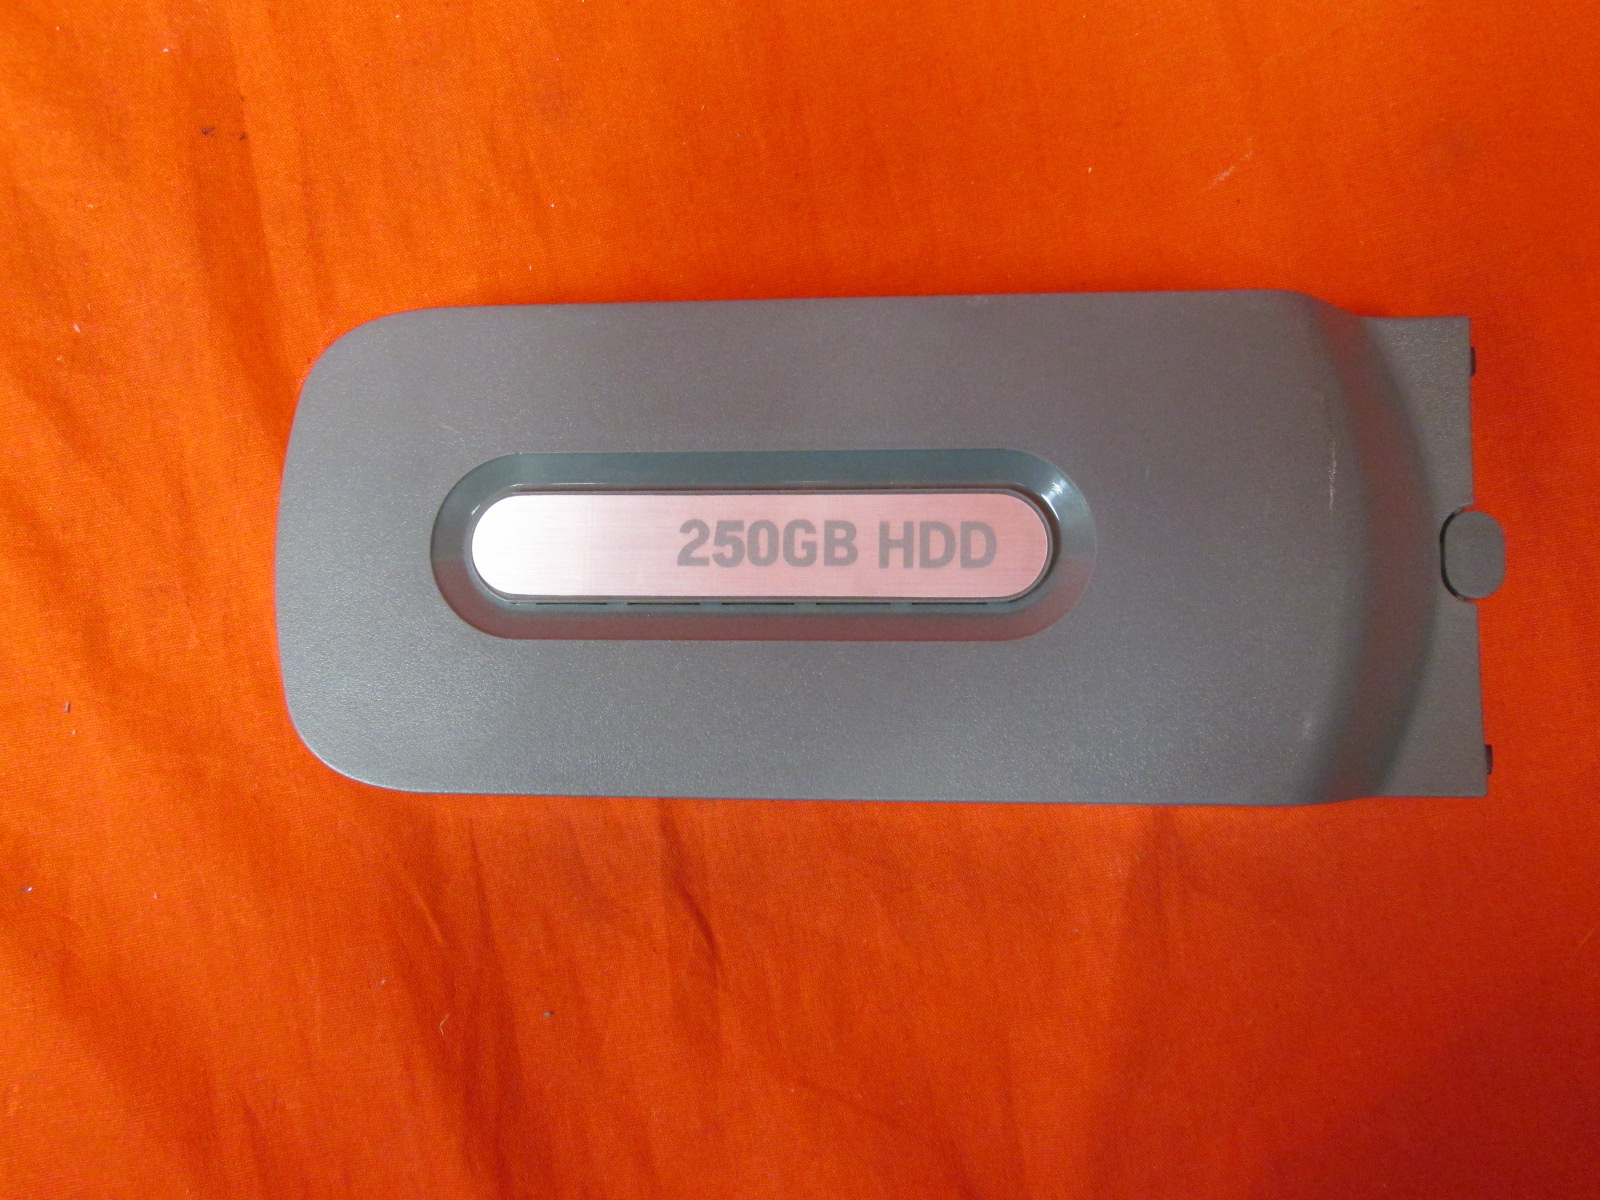 250 GB Hard Disk Drive Hdd For Microsoft Xbox 360 Broken